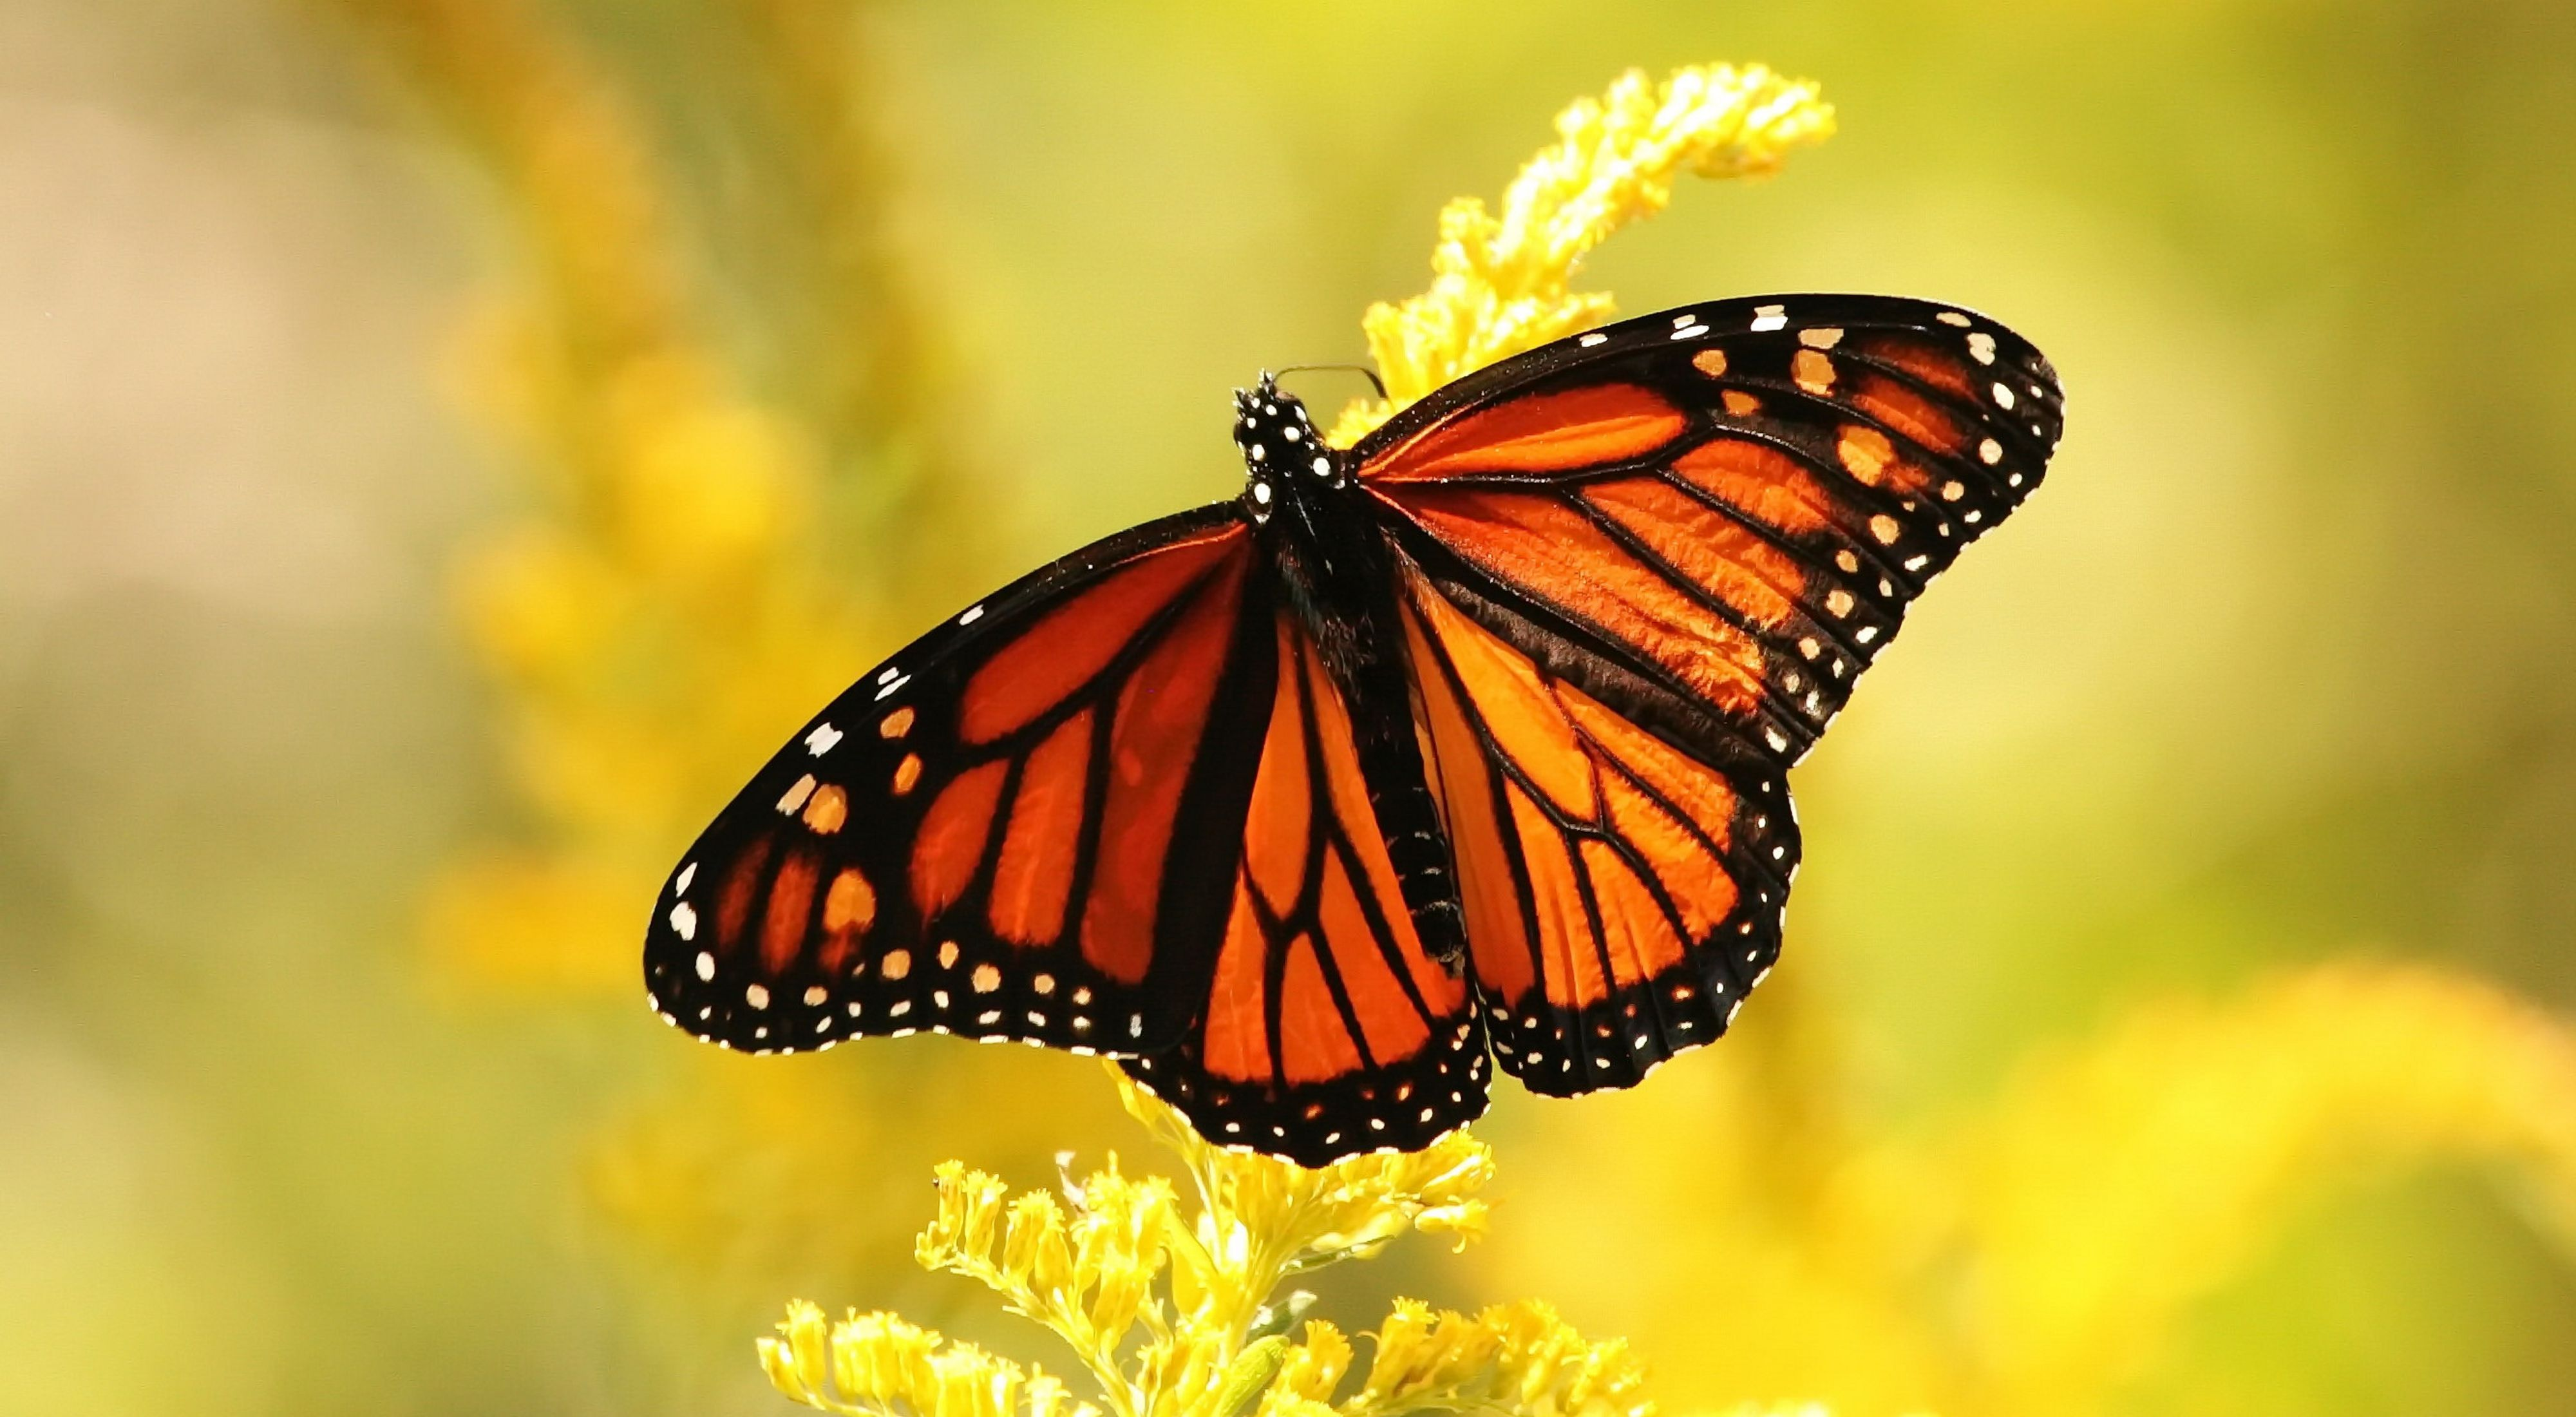 Goldenrod provides migrating monarchs with a vital food source.